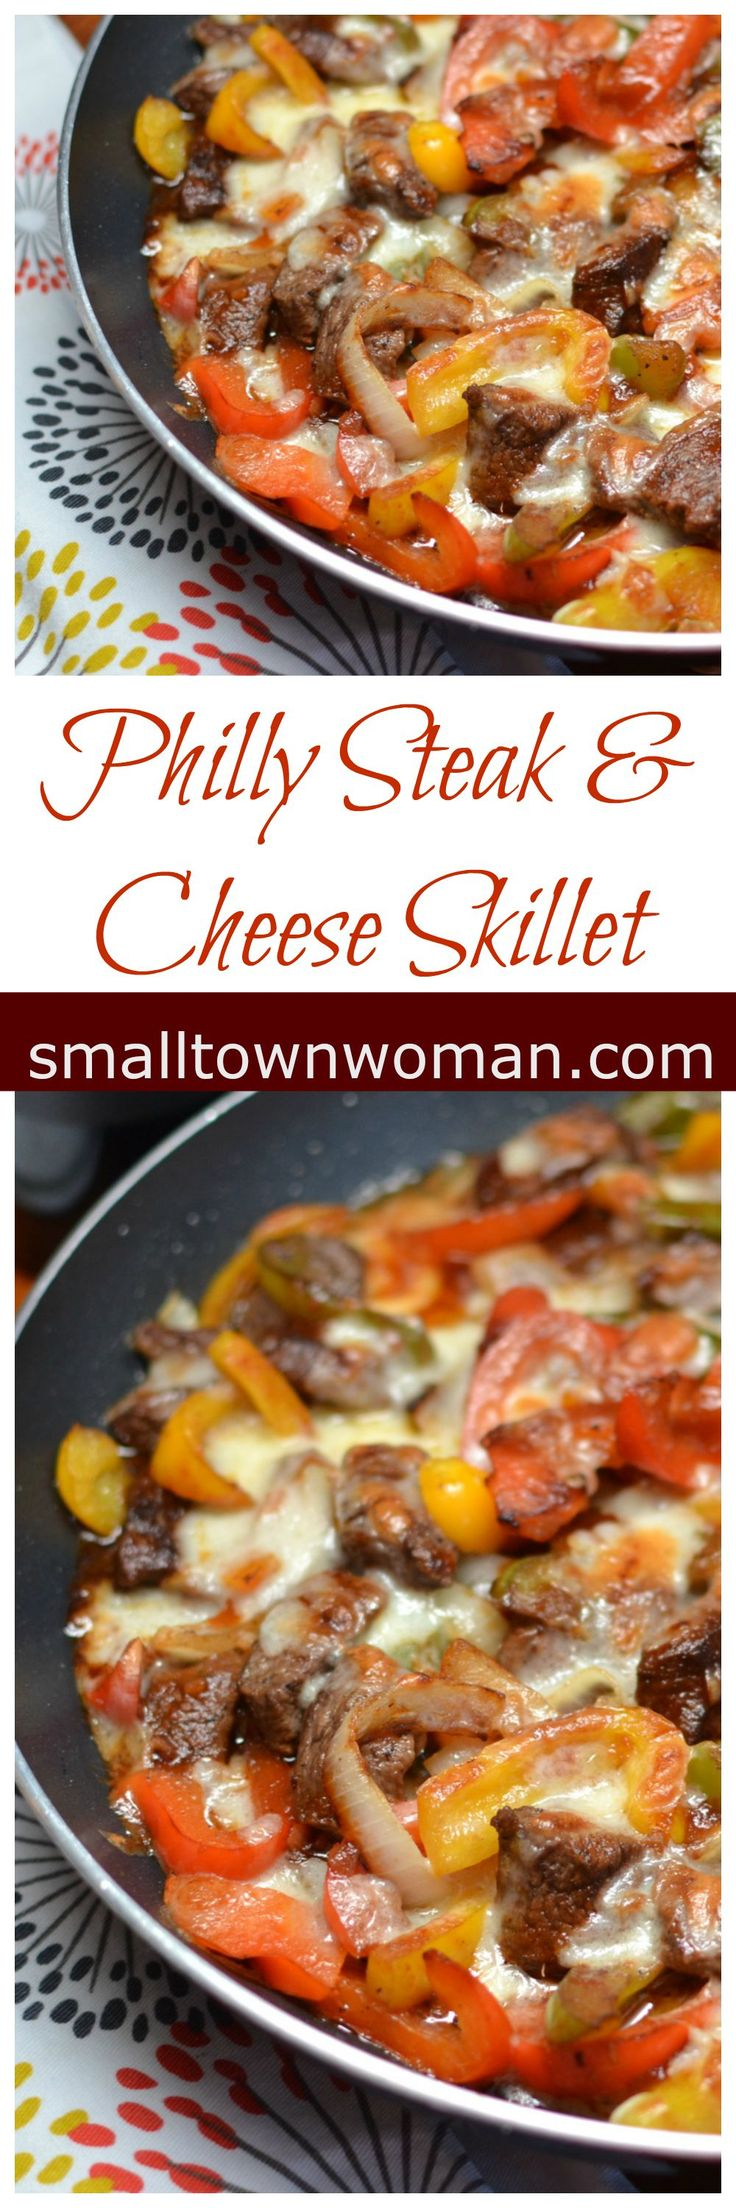 Do you like Philly Steak & Cheese but don't need or want the carbs! Here is your solution! This is fabulously delicious and easy!